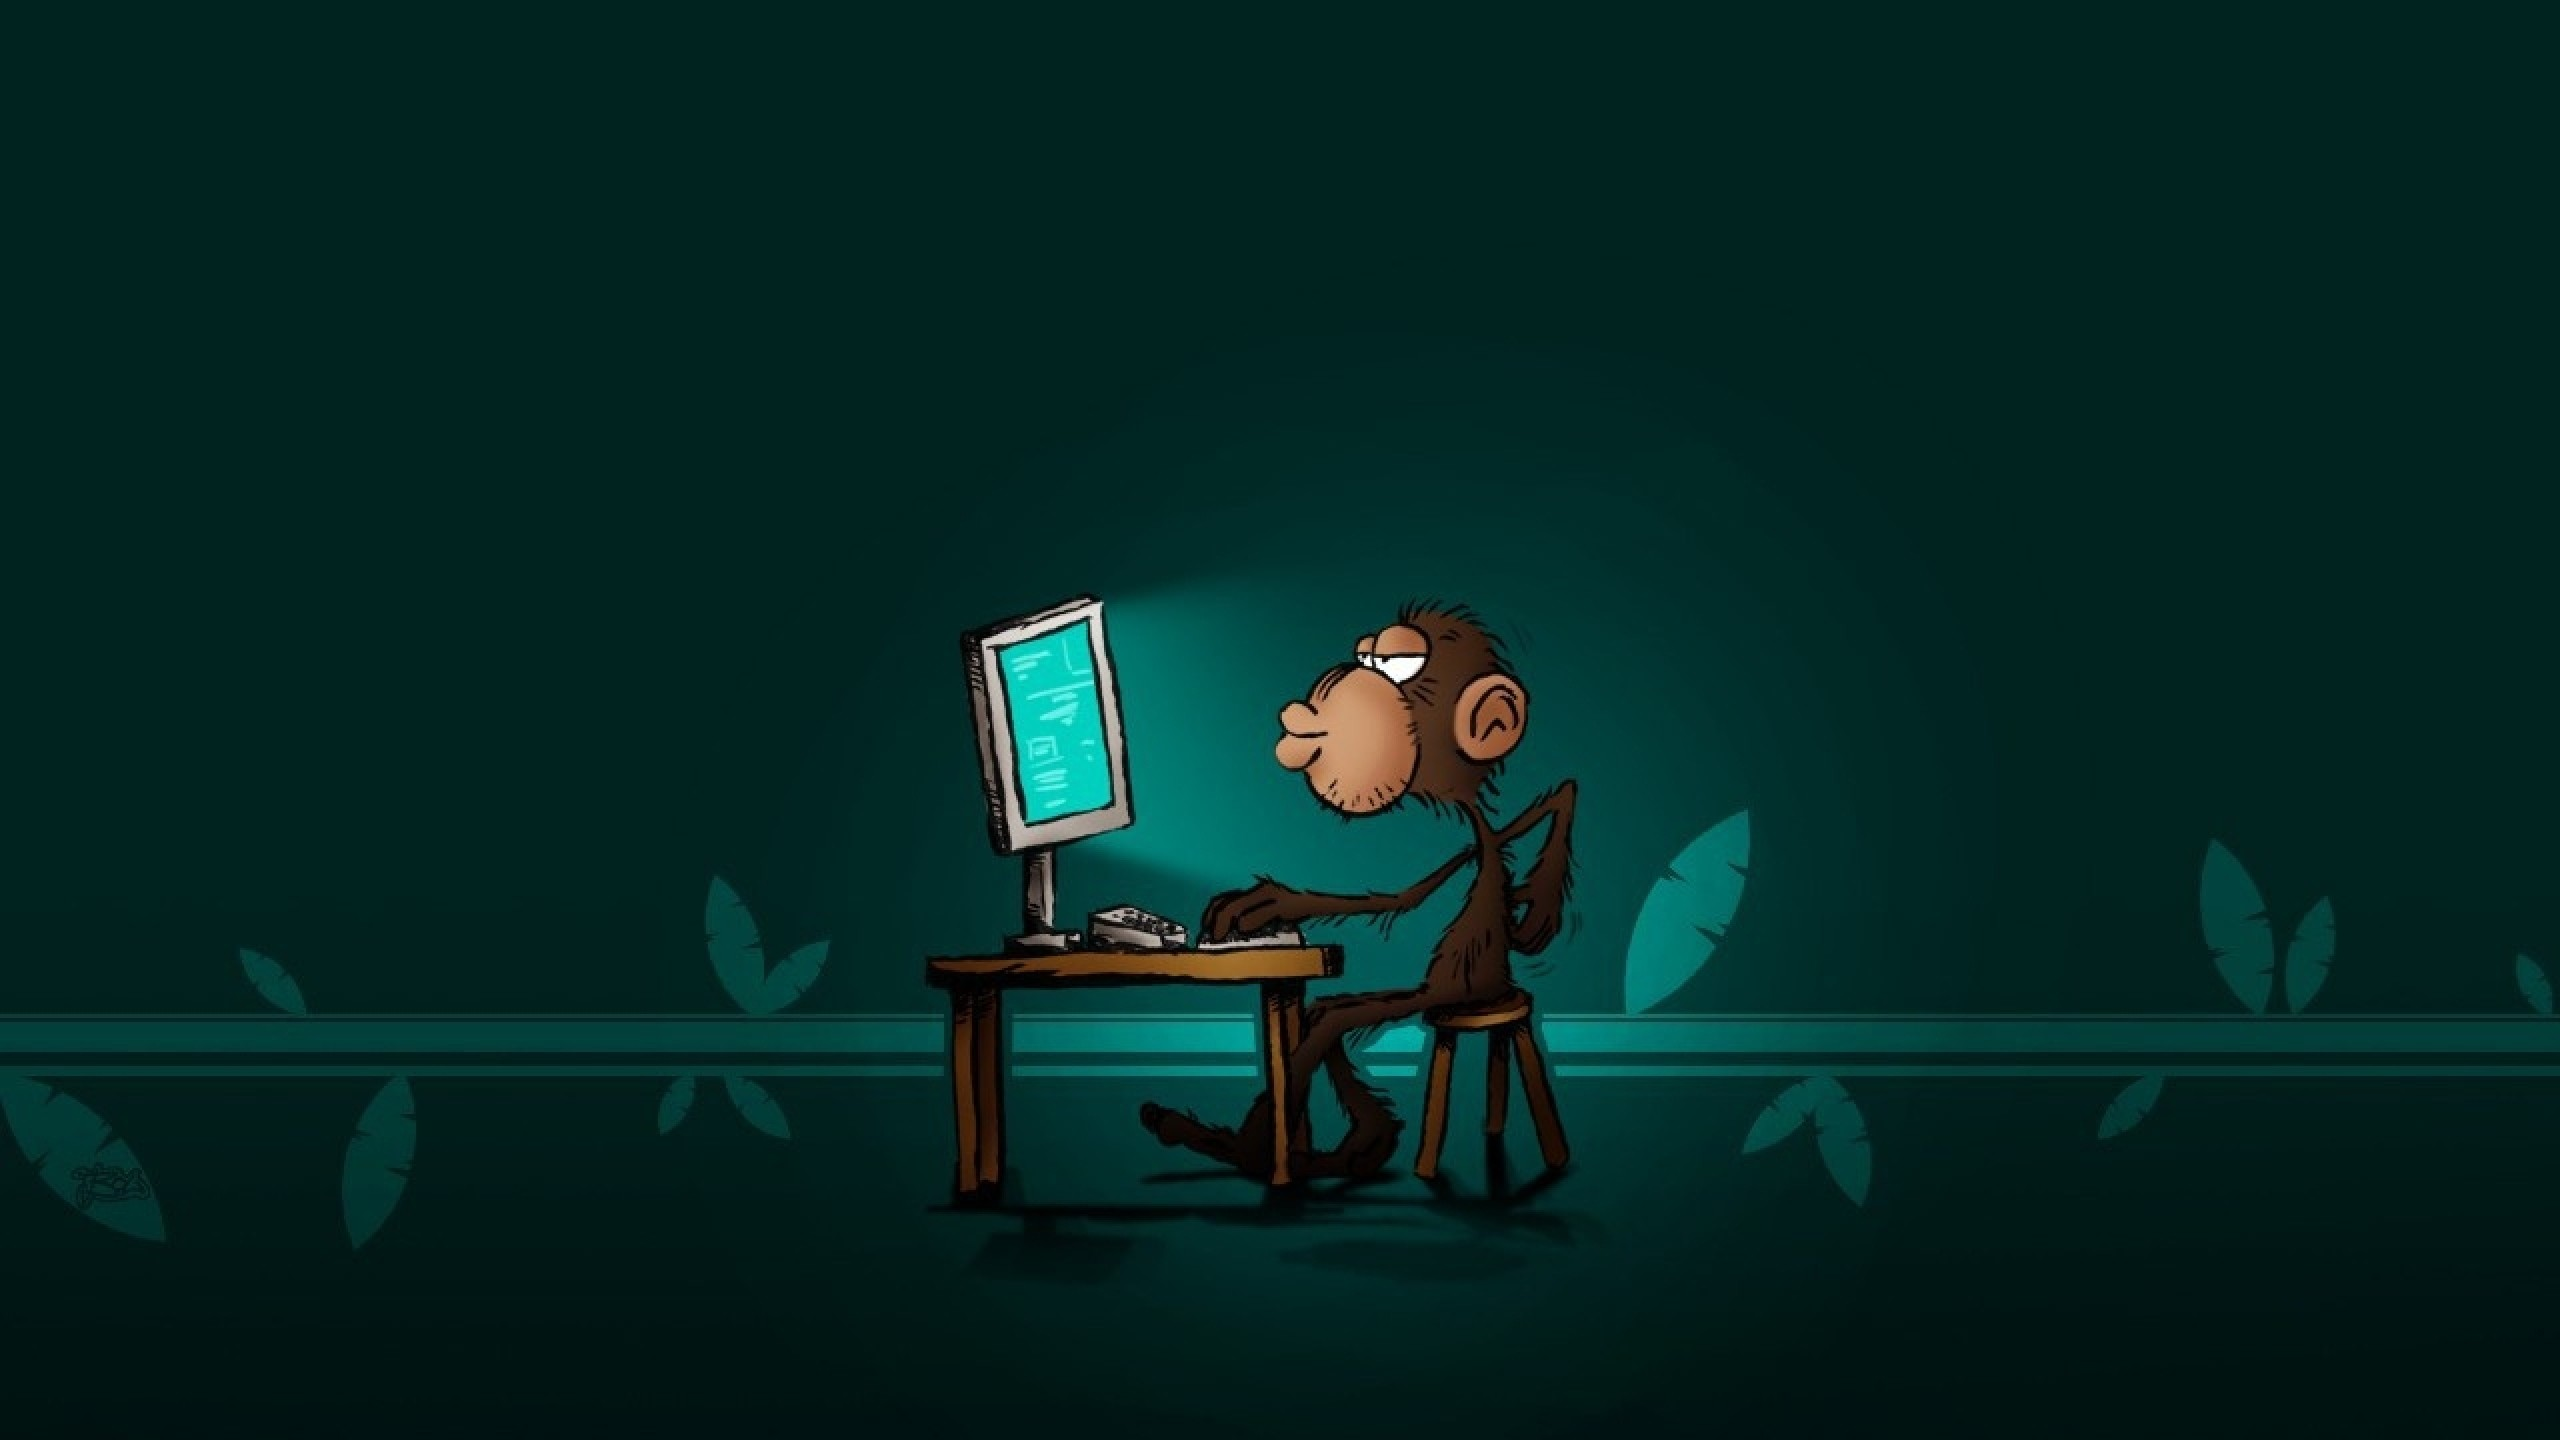 Cute Monkey Wallpapers For Mobile Monkey On The Computer Wallpaper Hd Wallpapers Hd